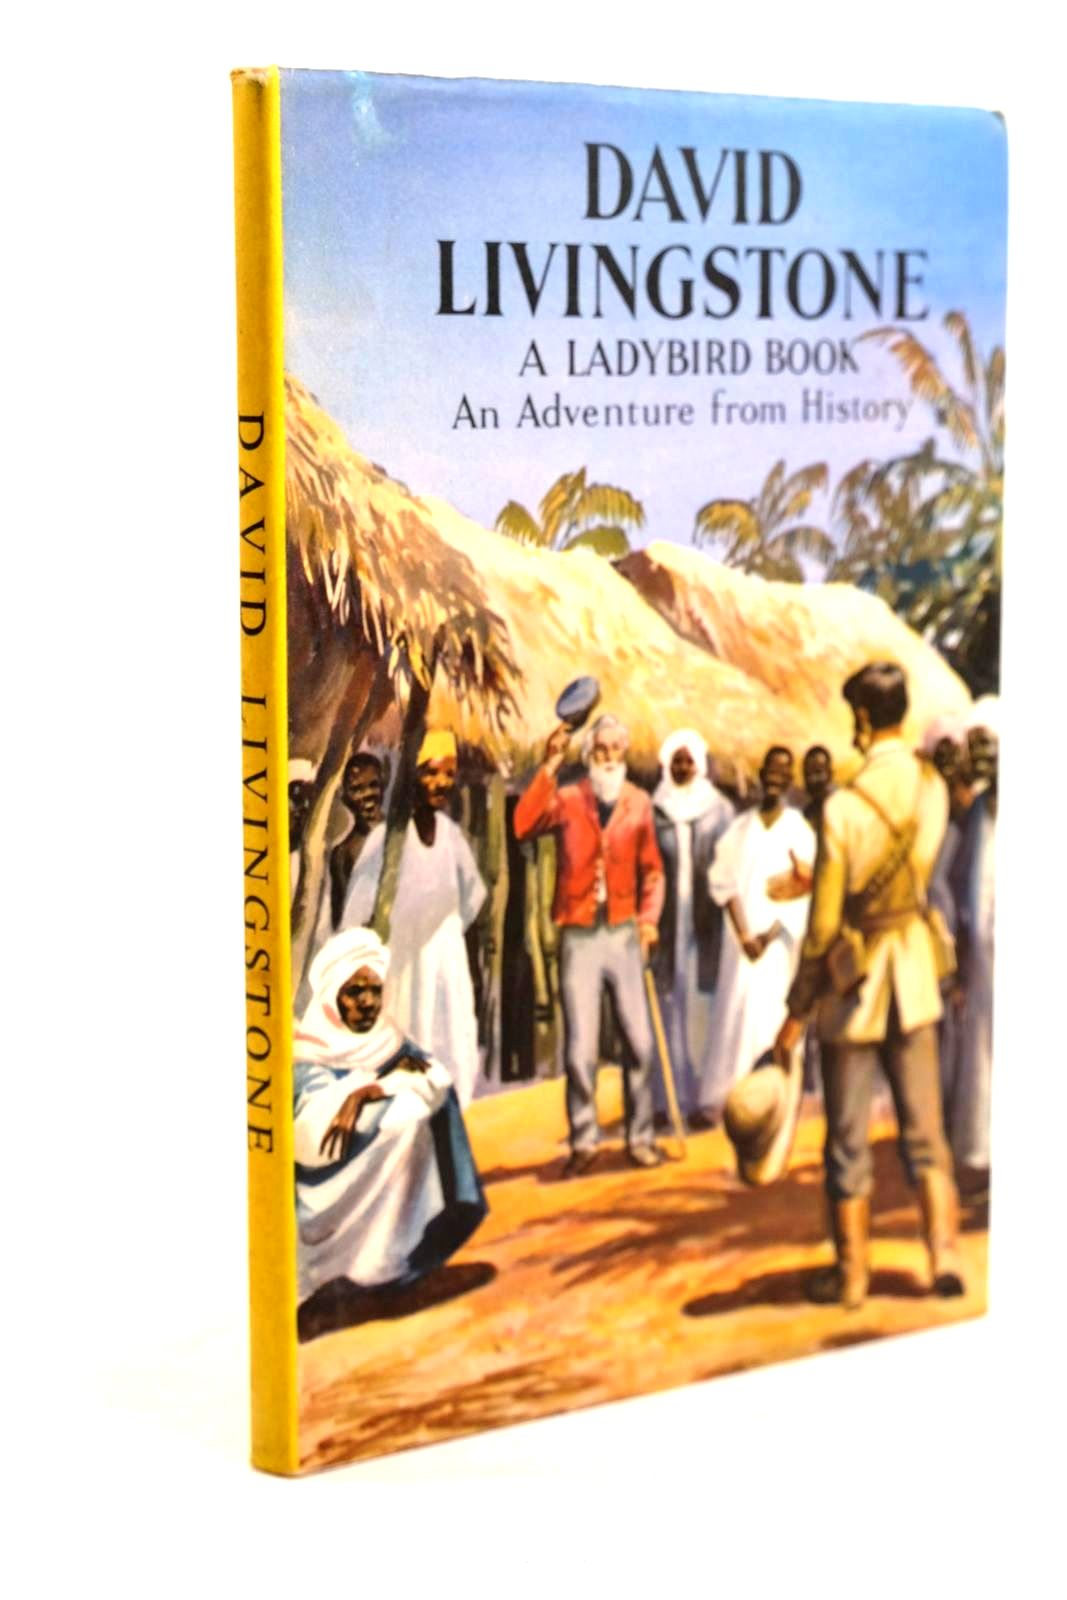 Photo of DAVID LIVINGSTONE written by Peach, L. Du Garde illustrated by Kenney, John published by Wills & Hepworth Ltd. (STOCK CODE: 1320627)  for sale by Stella & Rose's Books